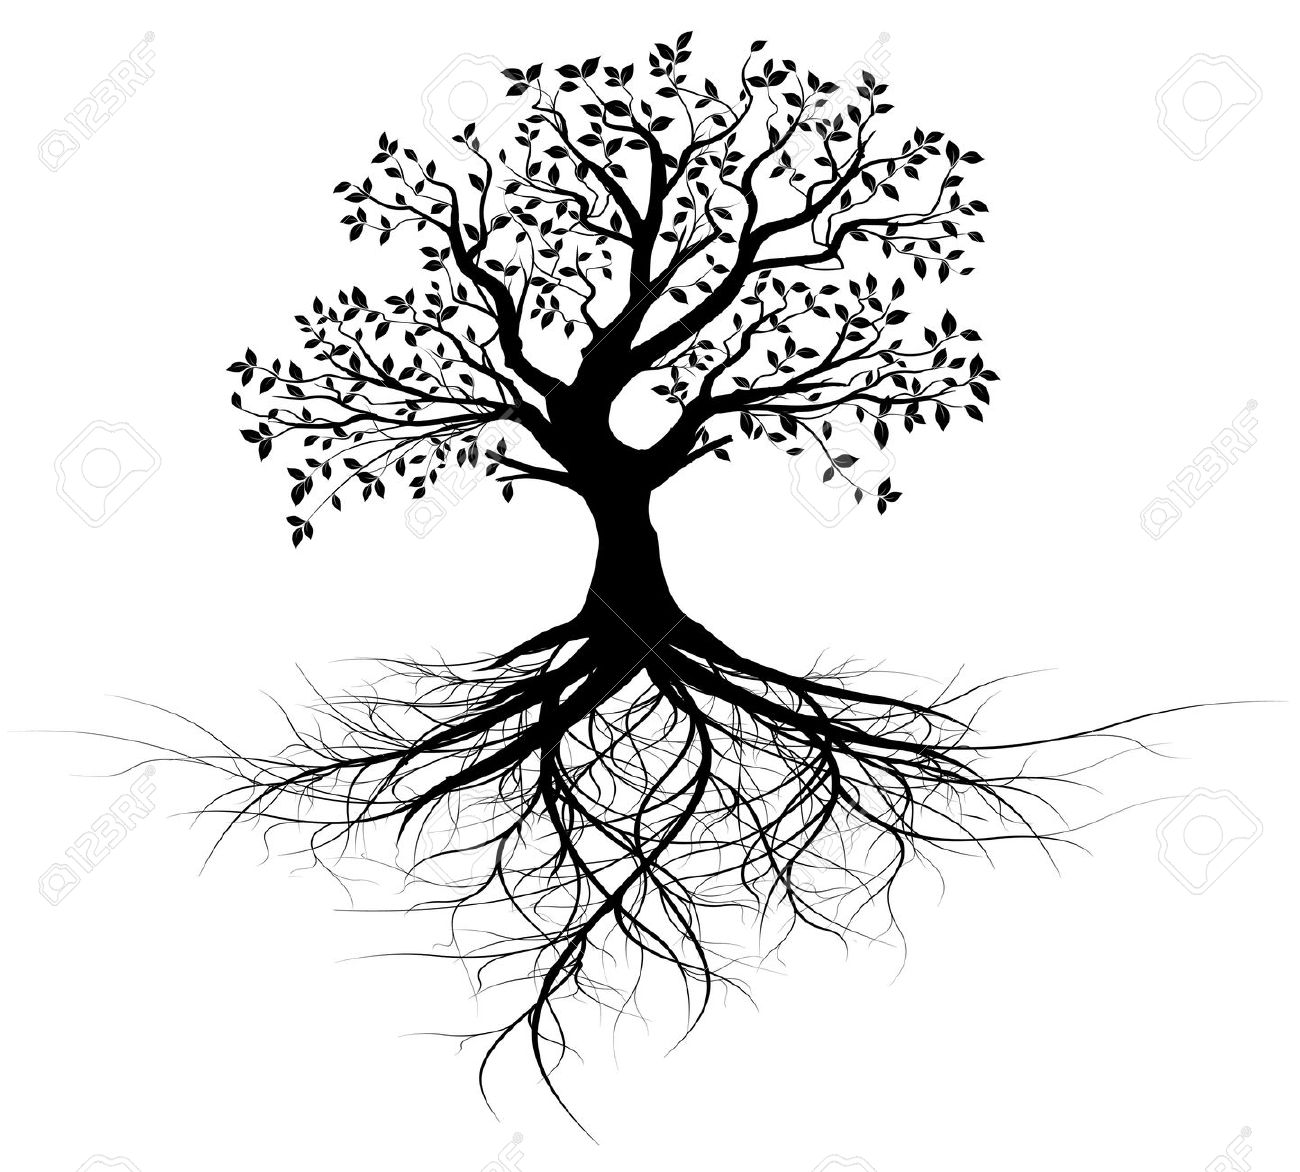 Free Clipart Tree With Roots Black And White.